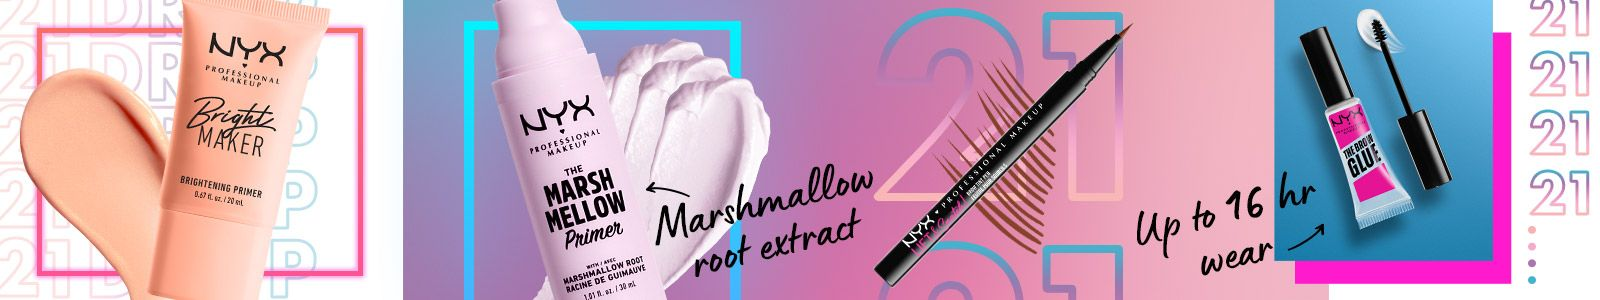 NYX, Marshmallow root extract up to 16 hour wear